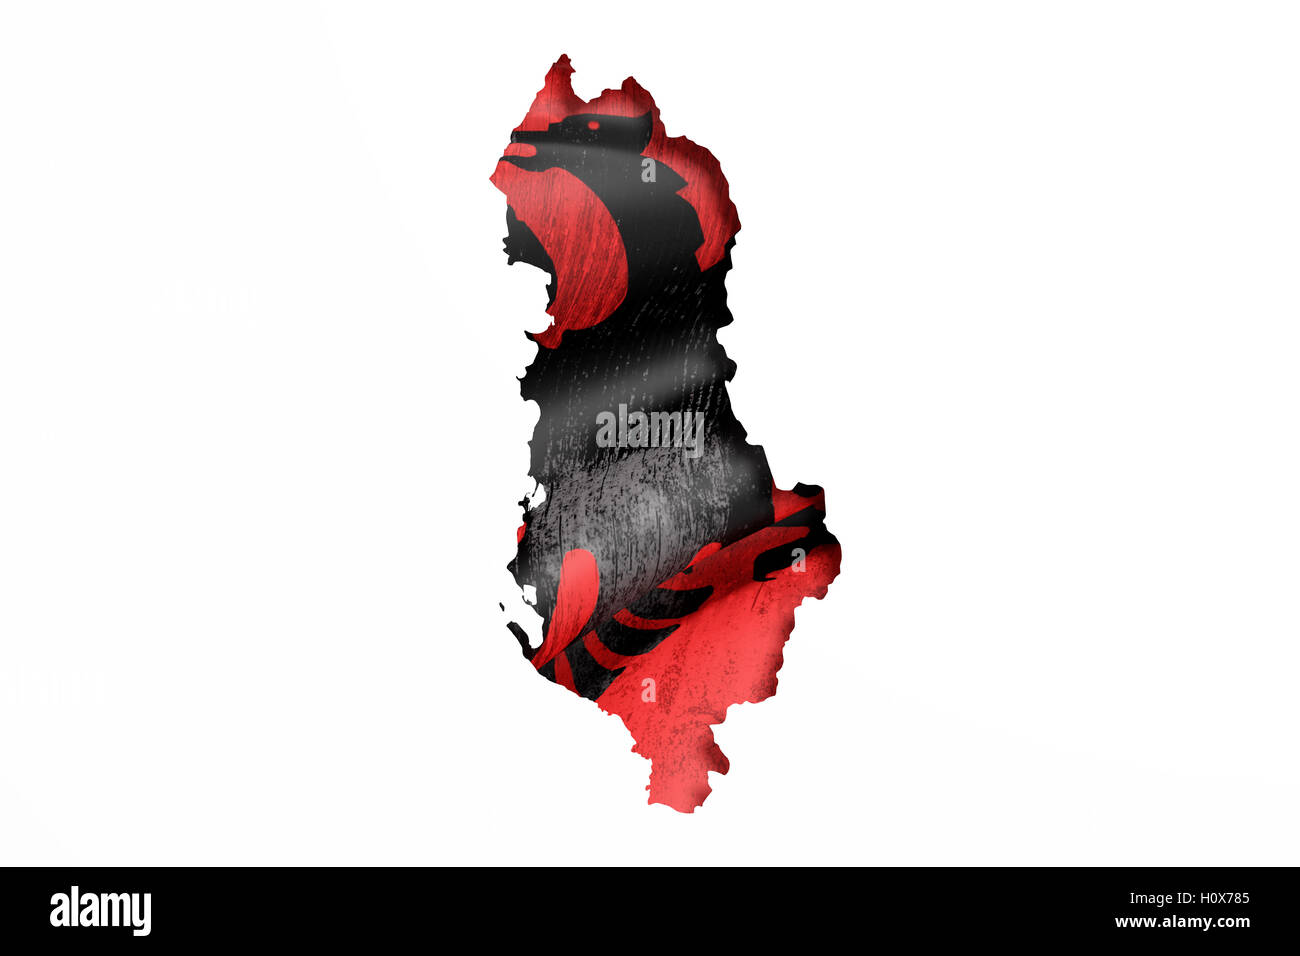 3d rendering of Albania map and flag on white background. - Stock Image